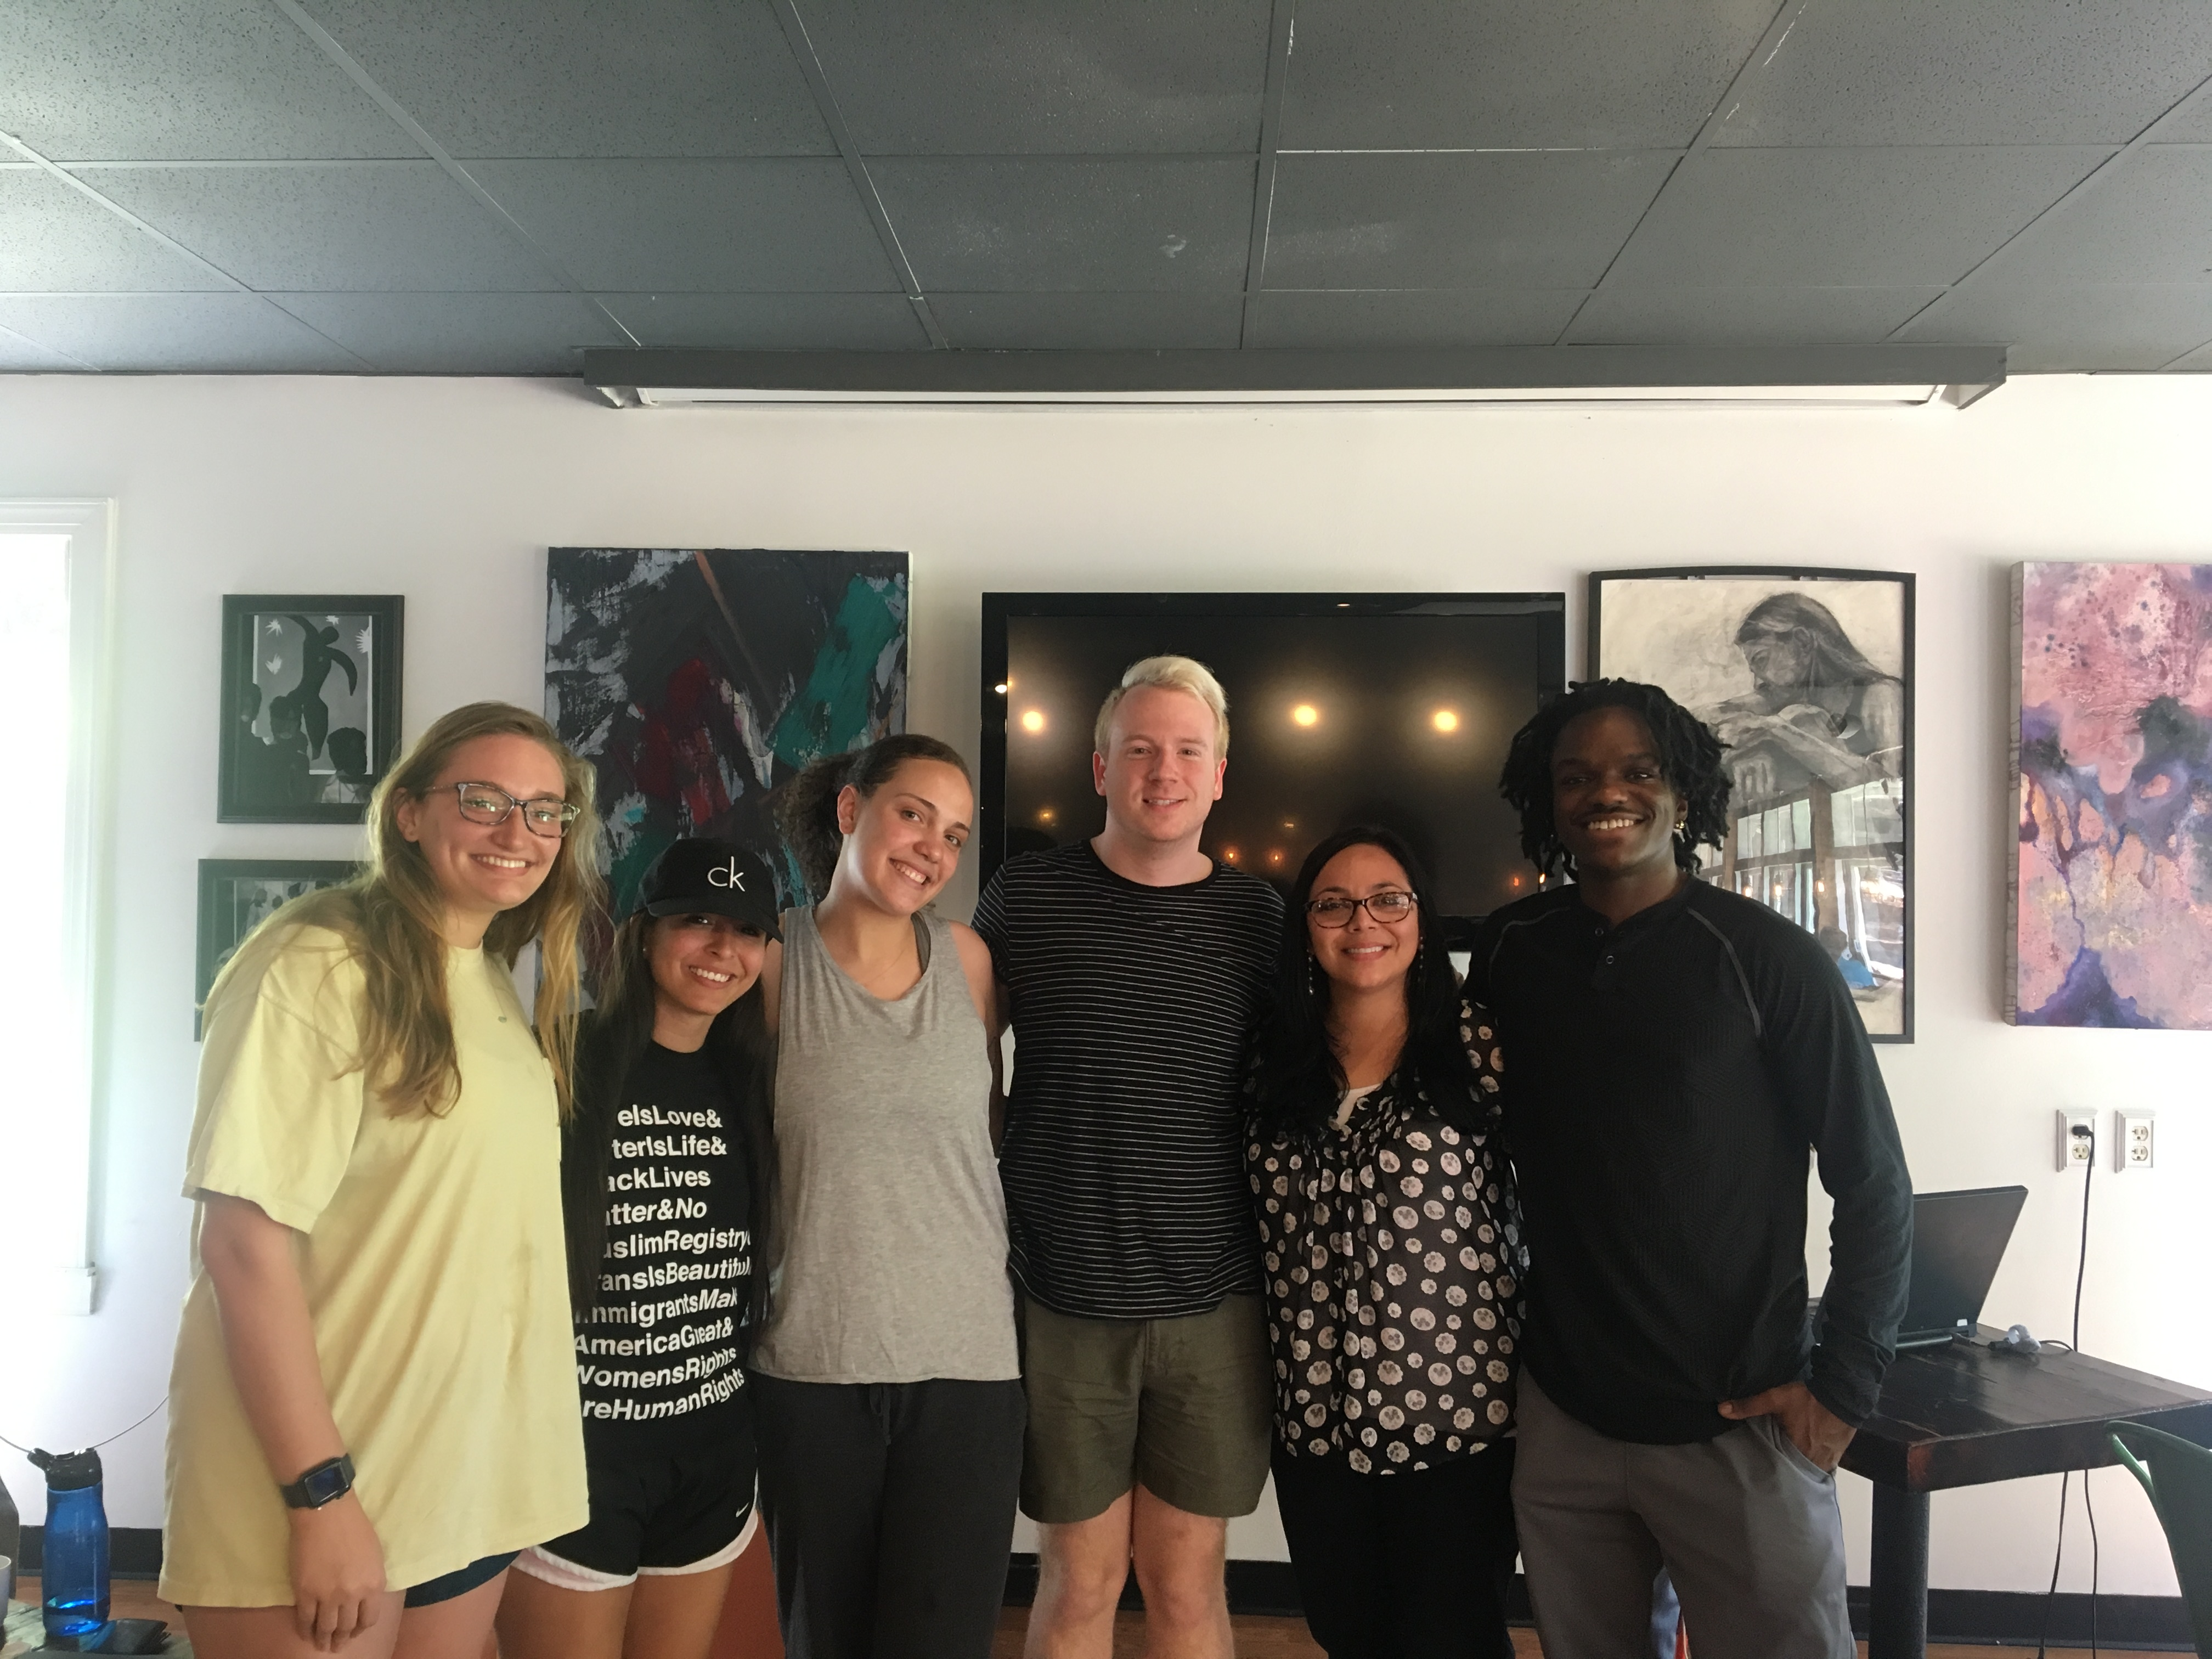 The six original members of the Davidson Microaggressions Project standing in a line in front of art work.